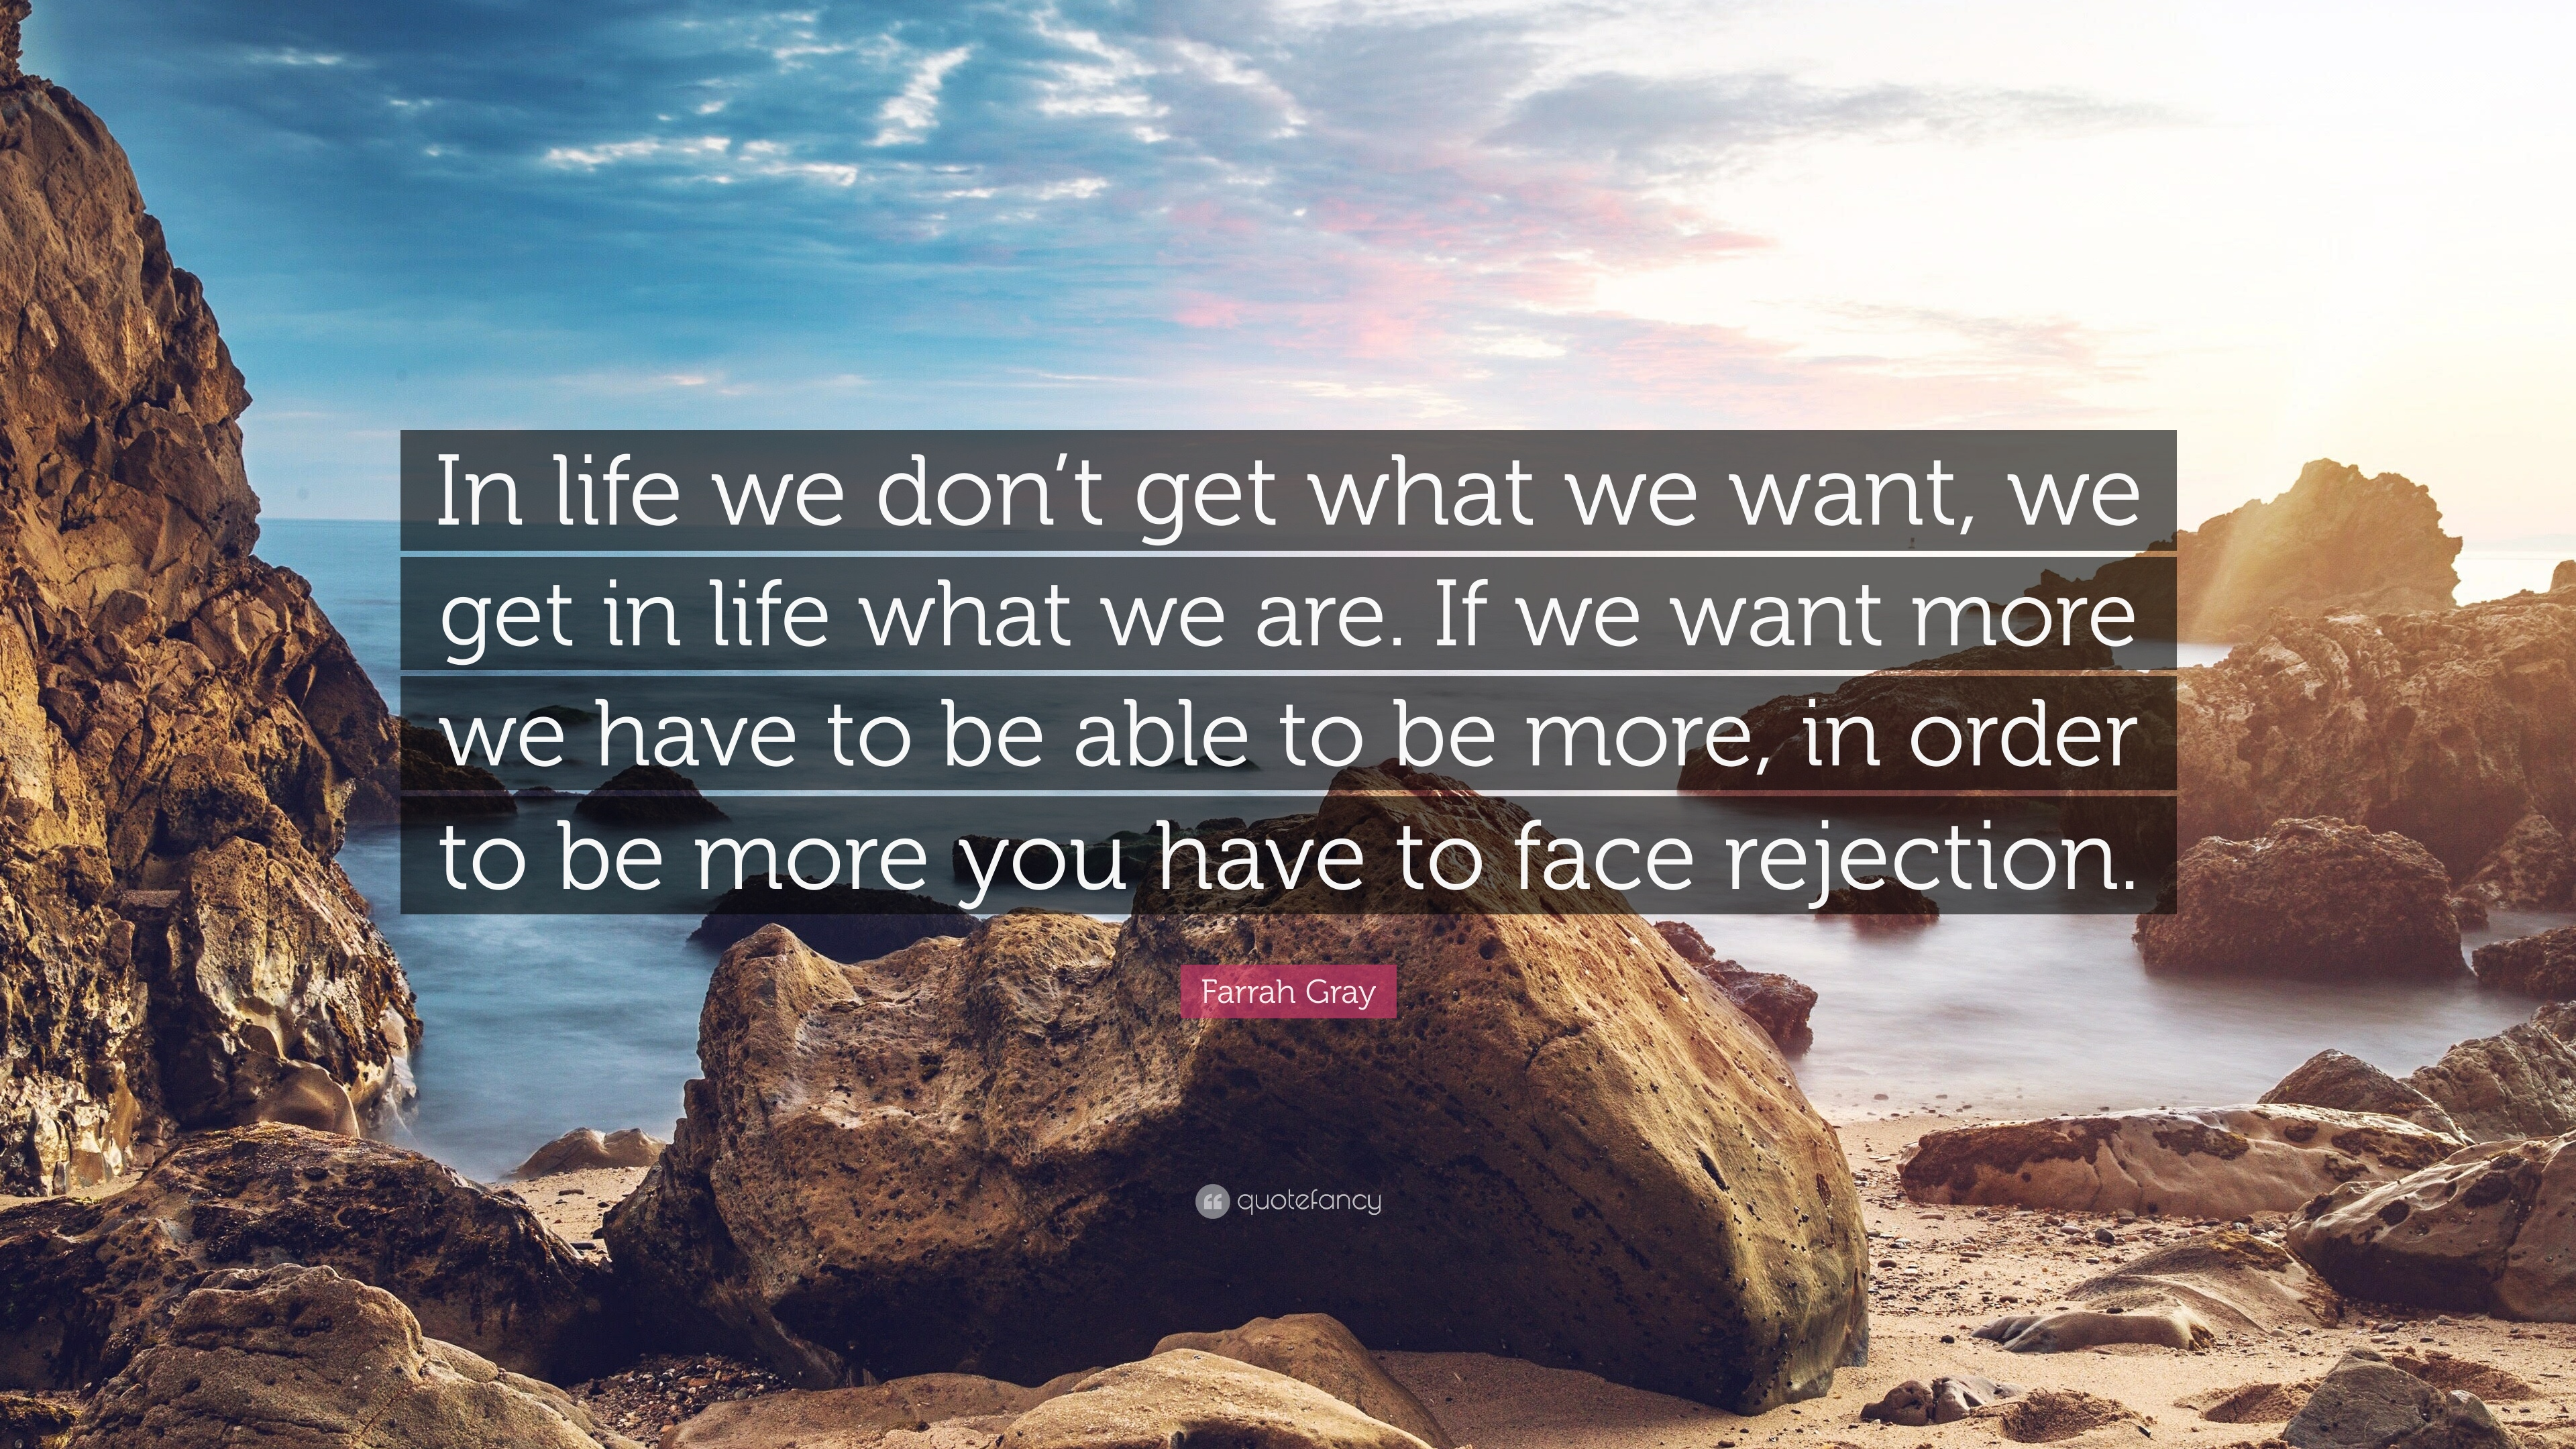 how to get what we want in life